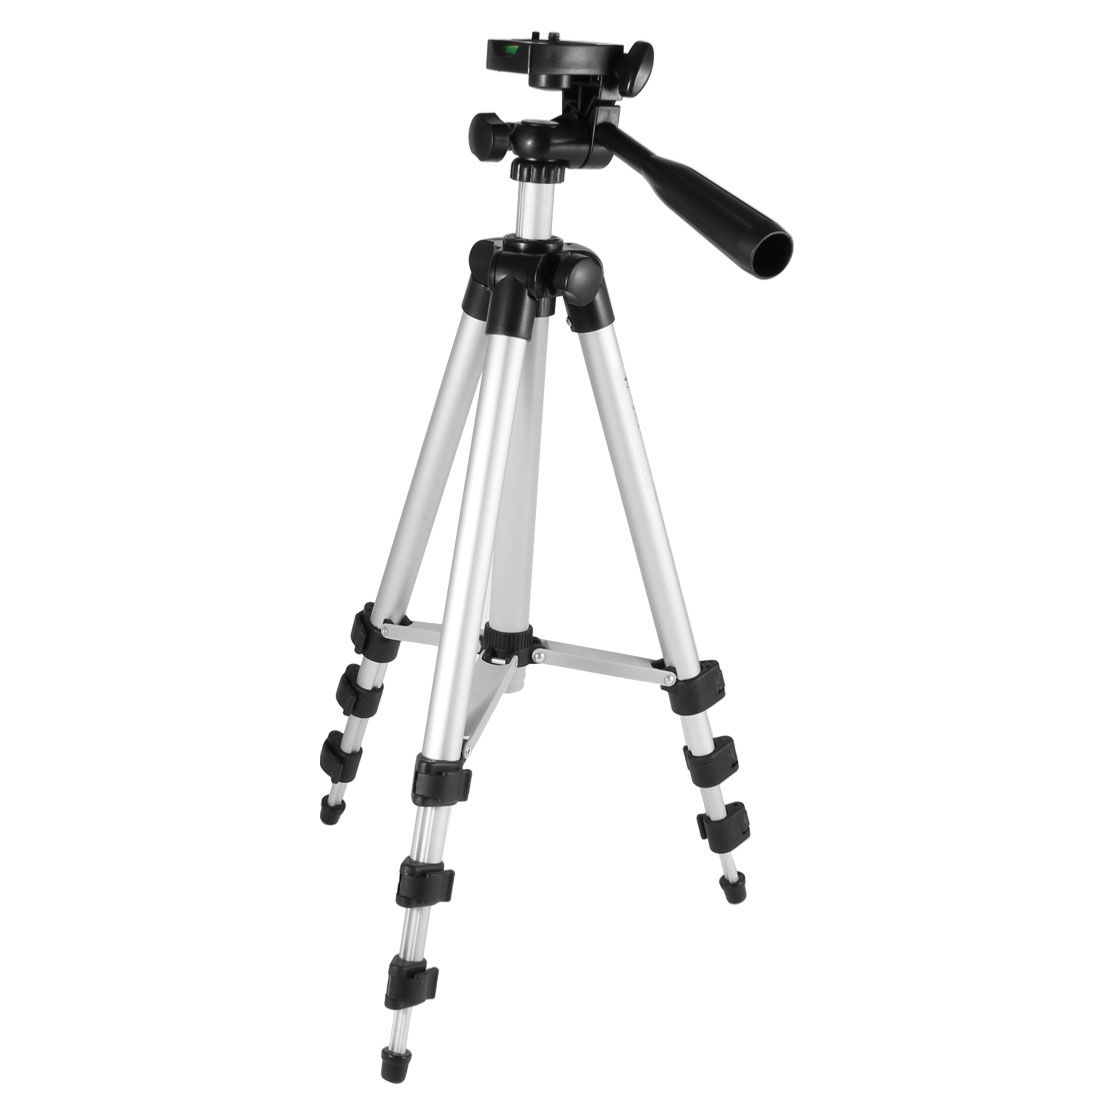 "Telescopic 4 Sections Aluminum Legs Tripod 39.4"" for DSLR SLR Camera"